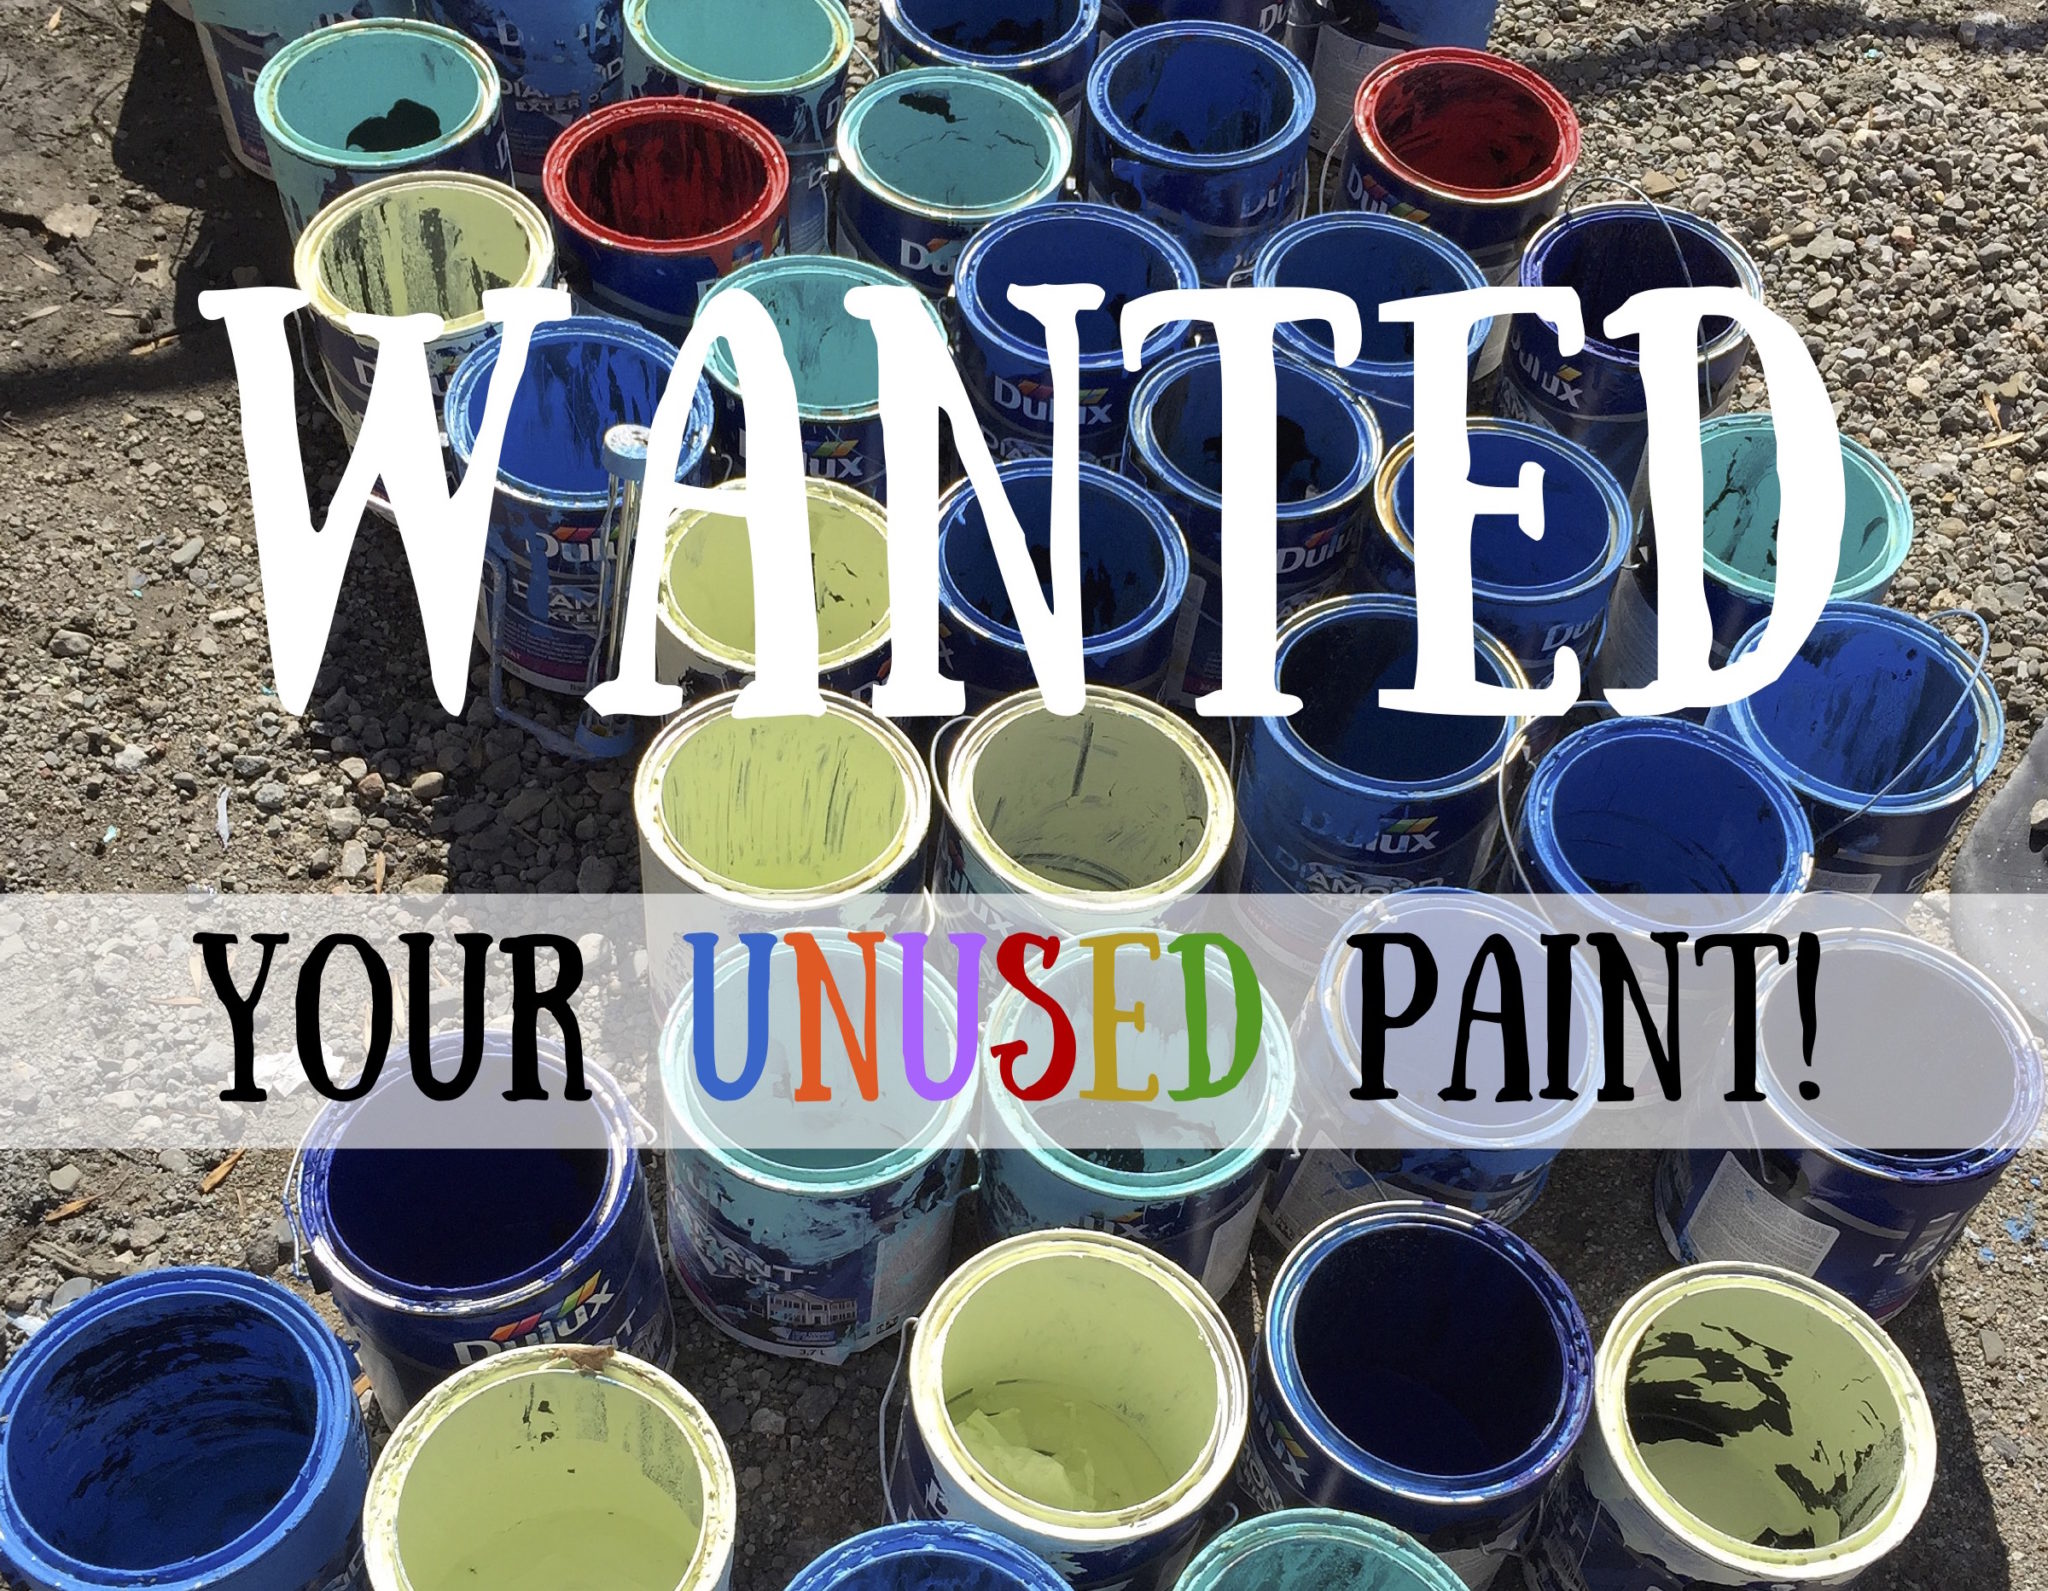 Wanted: Your Unused Paint!